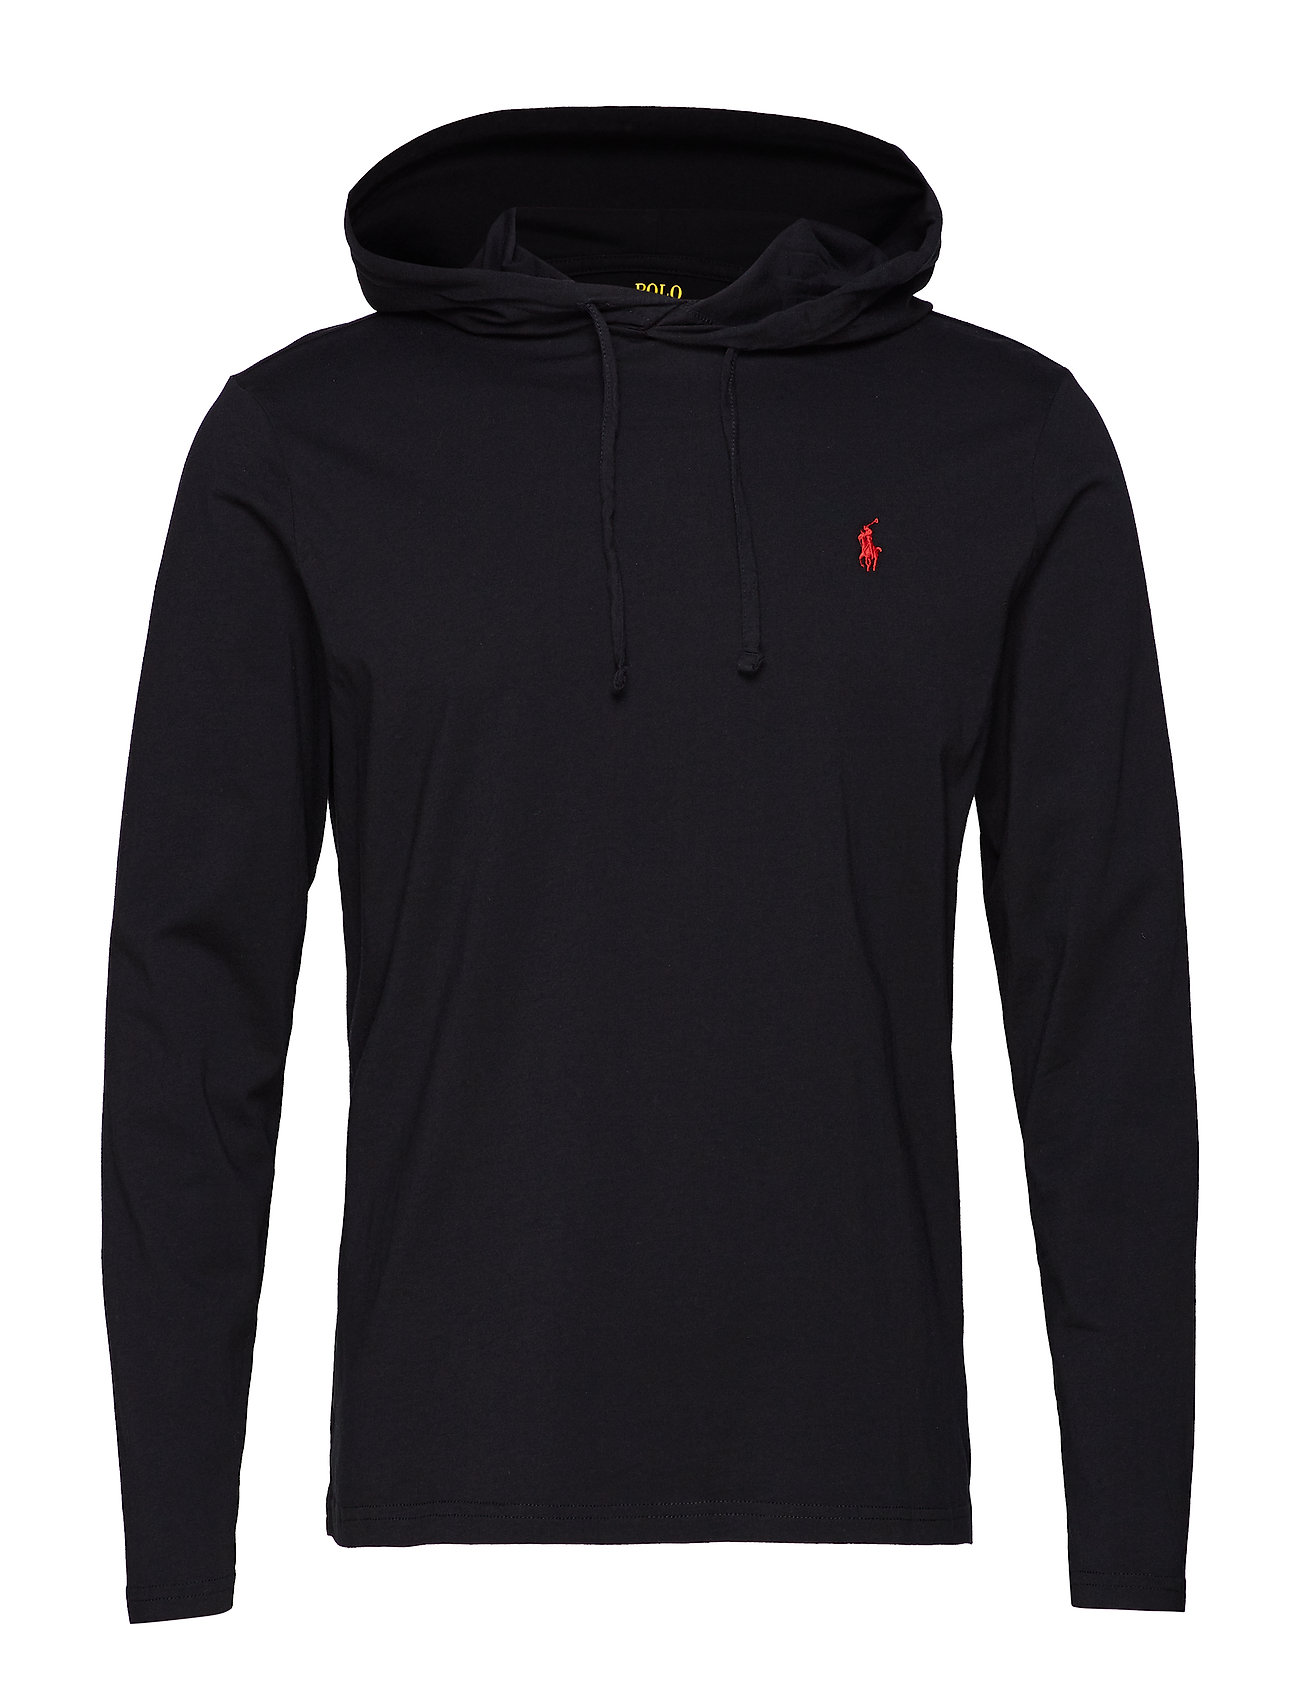 Polo Ralph Lauren Cotton Jersey Hooded T-Shirt - POLO BLACK/RED PP